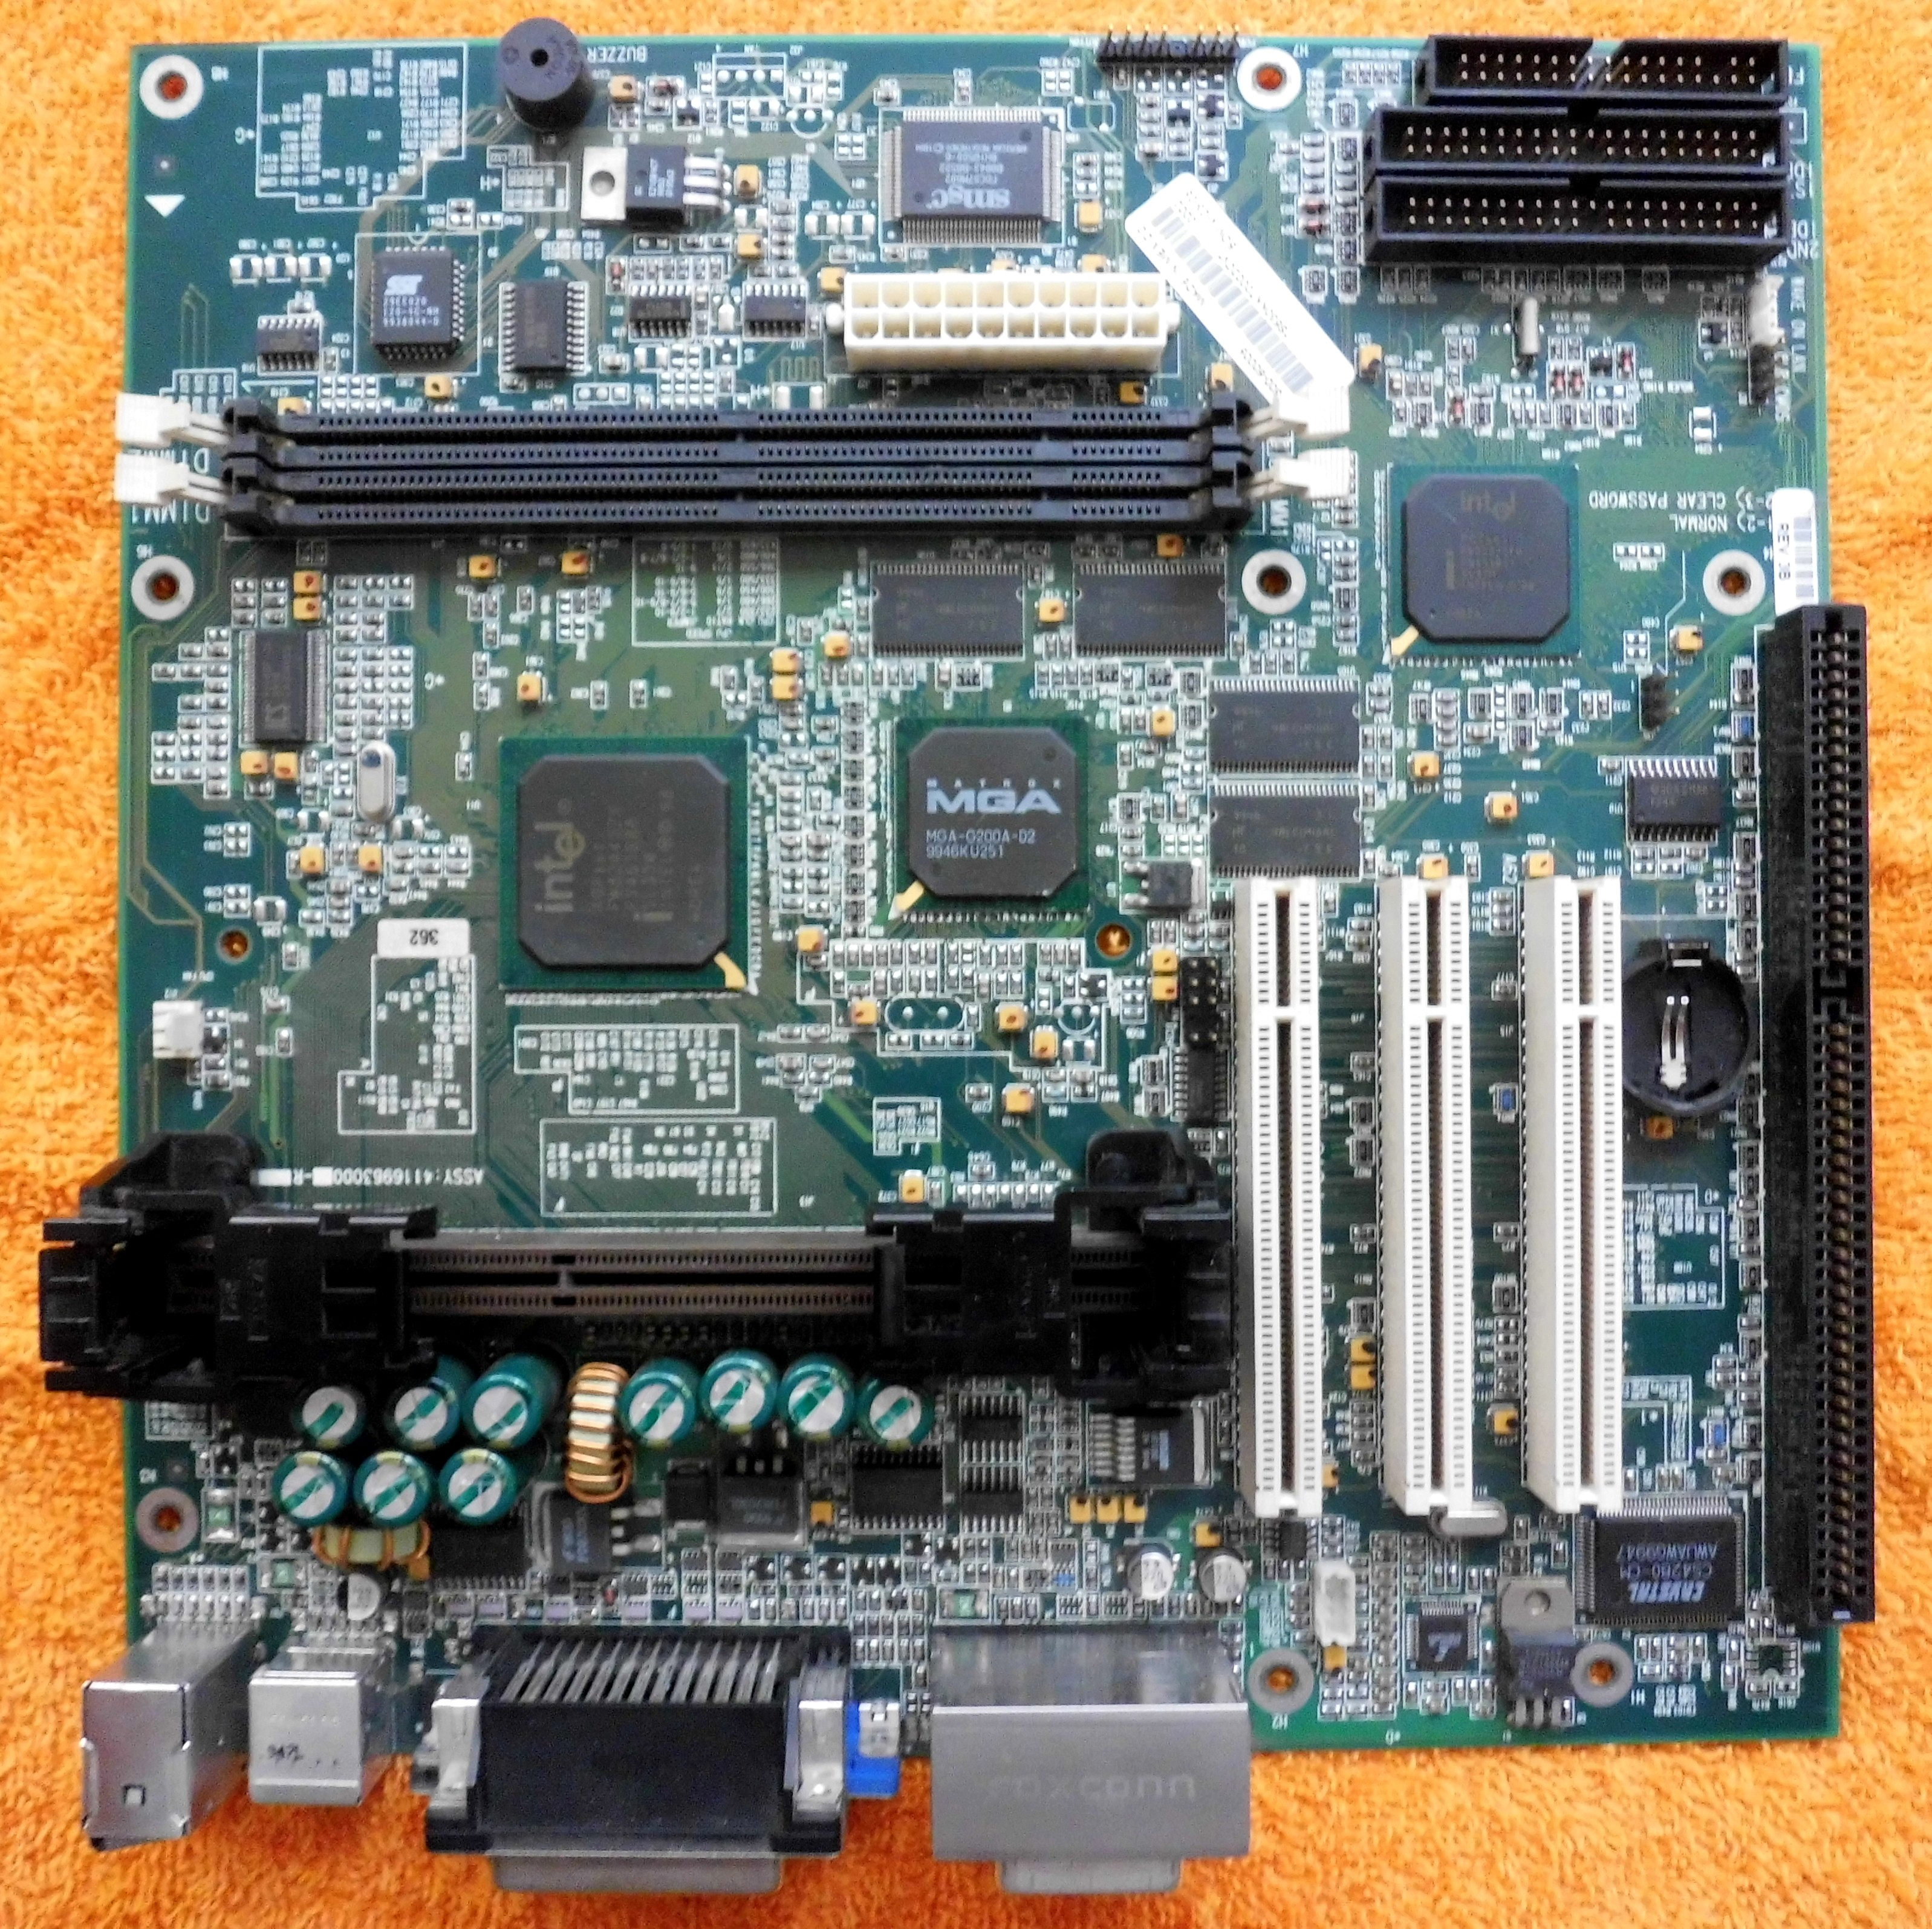 Dell Optiplex Gx280 Motherboard Diagram as well Gx280 Specs furthermore Index php moreover Motherboard Power Connector Pinbelegung furthermore puter Motherboard. on dell optiplex gx280 motherboard diagram